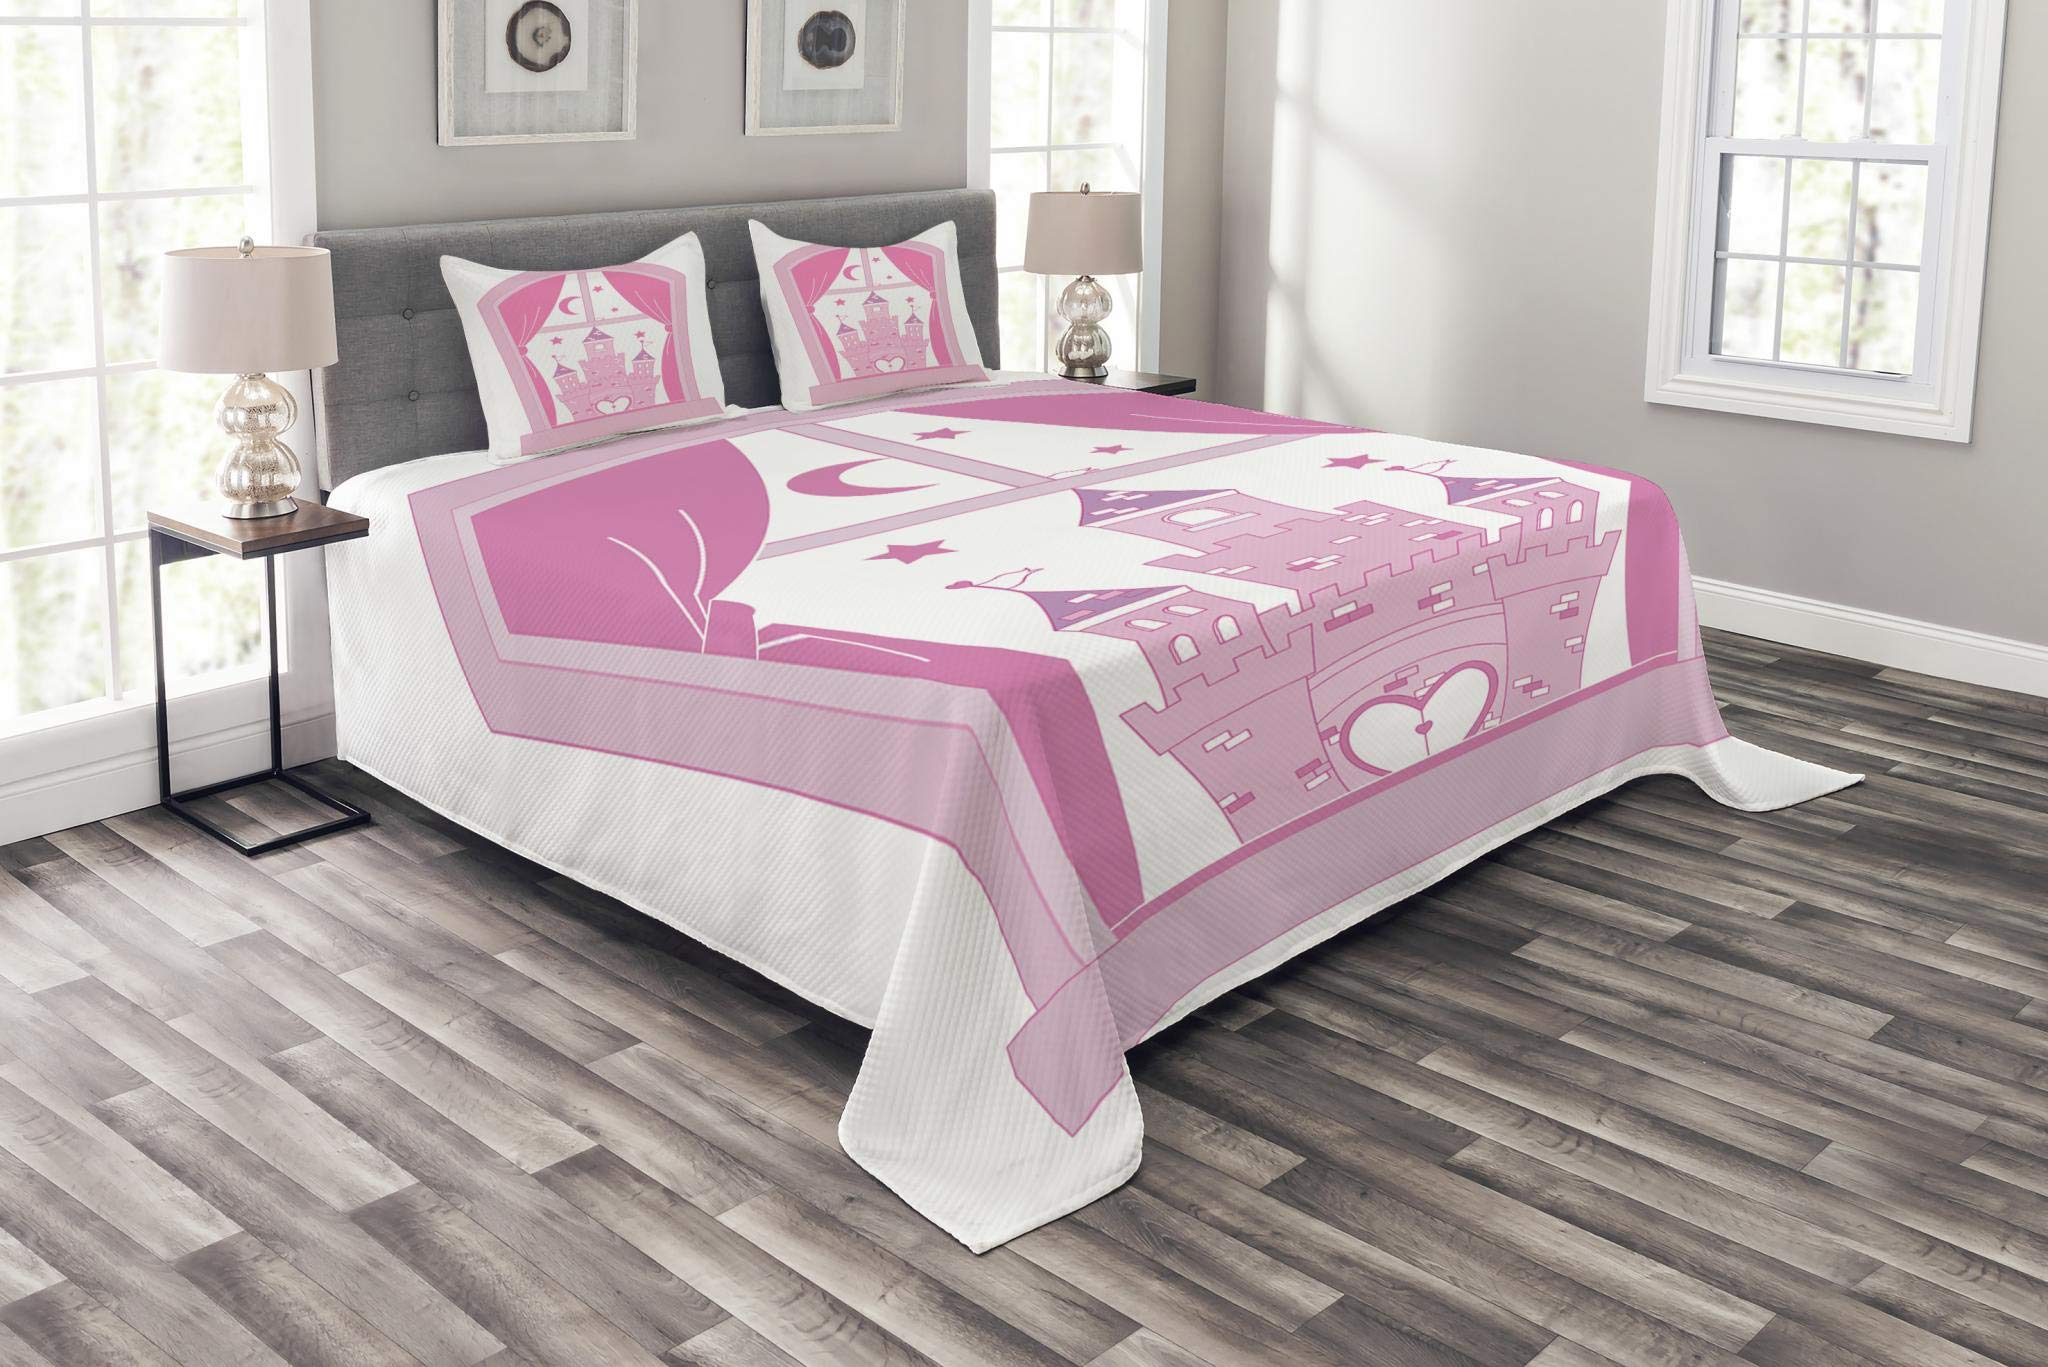 Lunarable Princess Bedspread Set King Size, Princess Castle Night Sky Stars Moon Palace Royalty Love Window Cartoon Print, Decorative Quilted 3 Piece Coverlet Set with 2 Pillow Shams, Pink Rose White